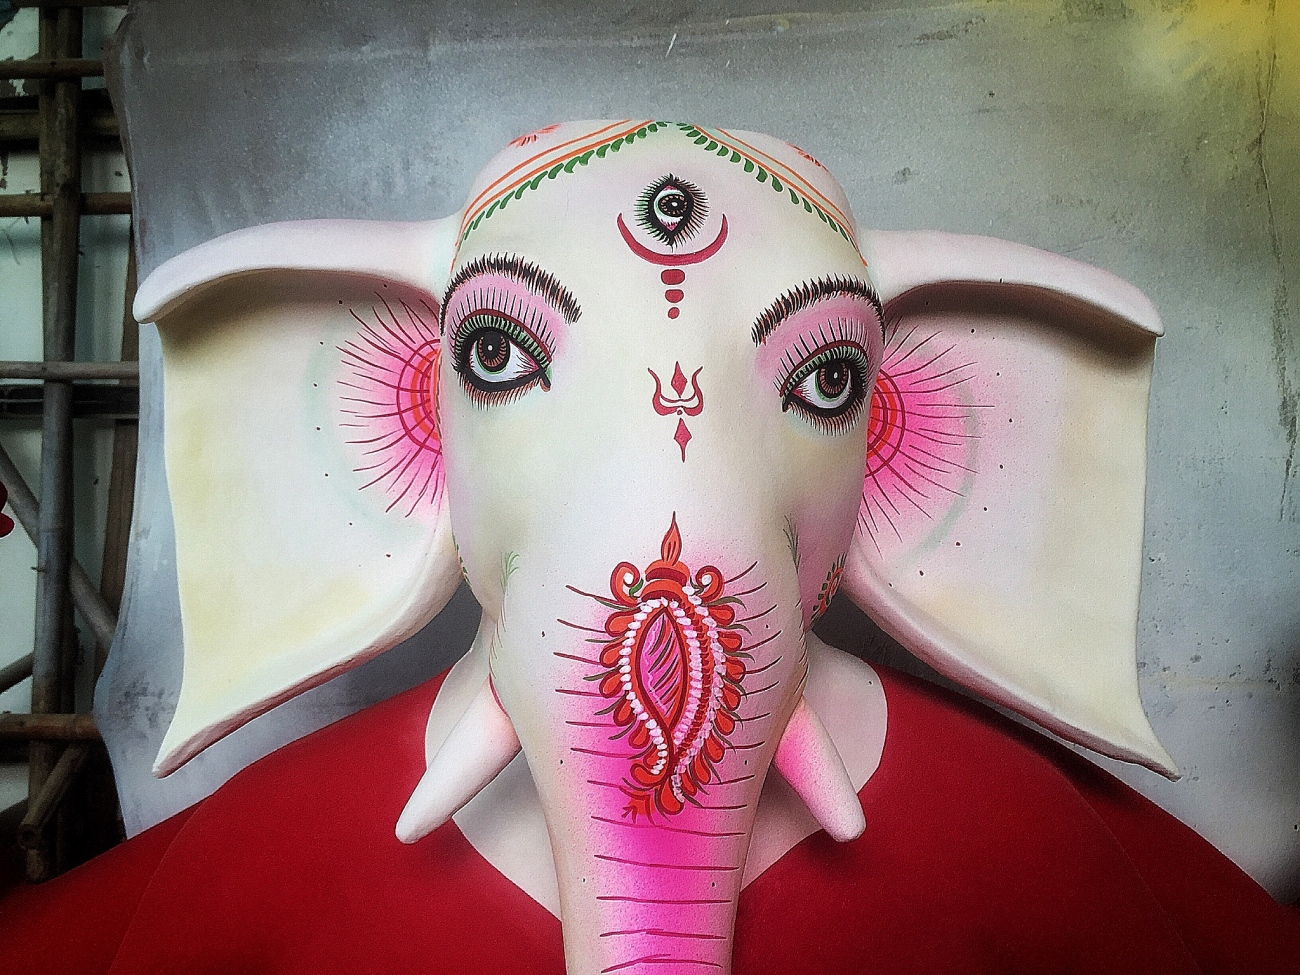 Ganesha - Almost ready for Durga Puja